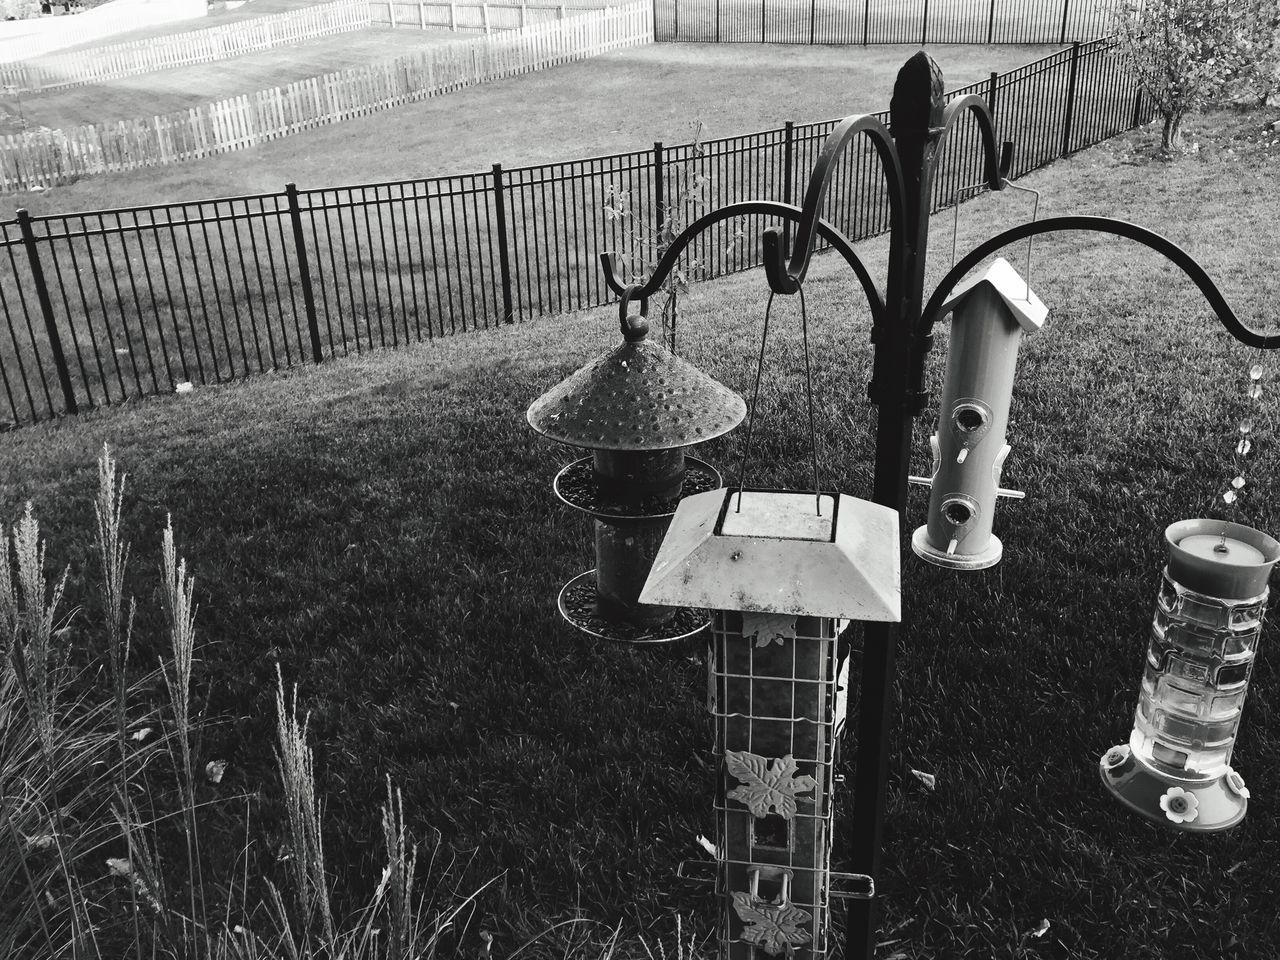 Monochrome suburbia 20: ...for the birds Outdoors Metal Grass Day No People Nature Monochrome Photography Birdless Feeders Fence Grass Back Yard